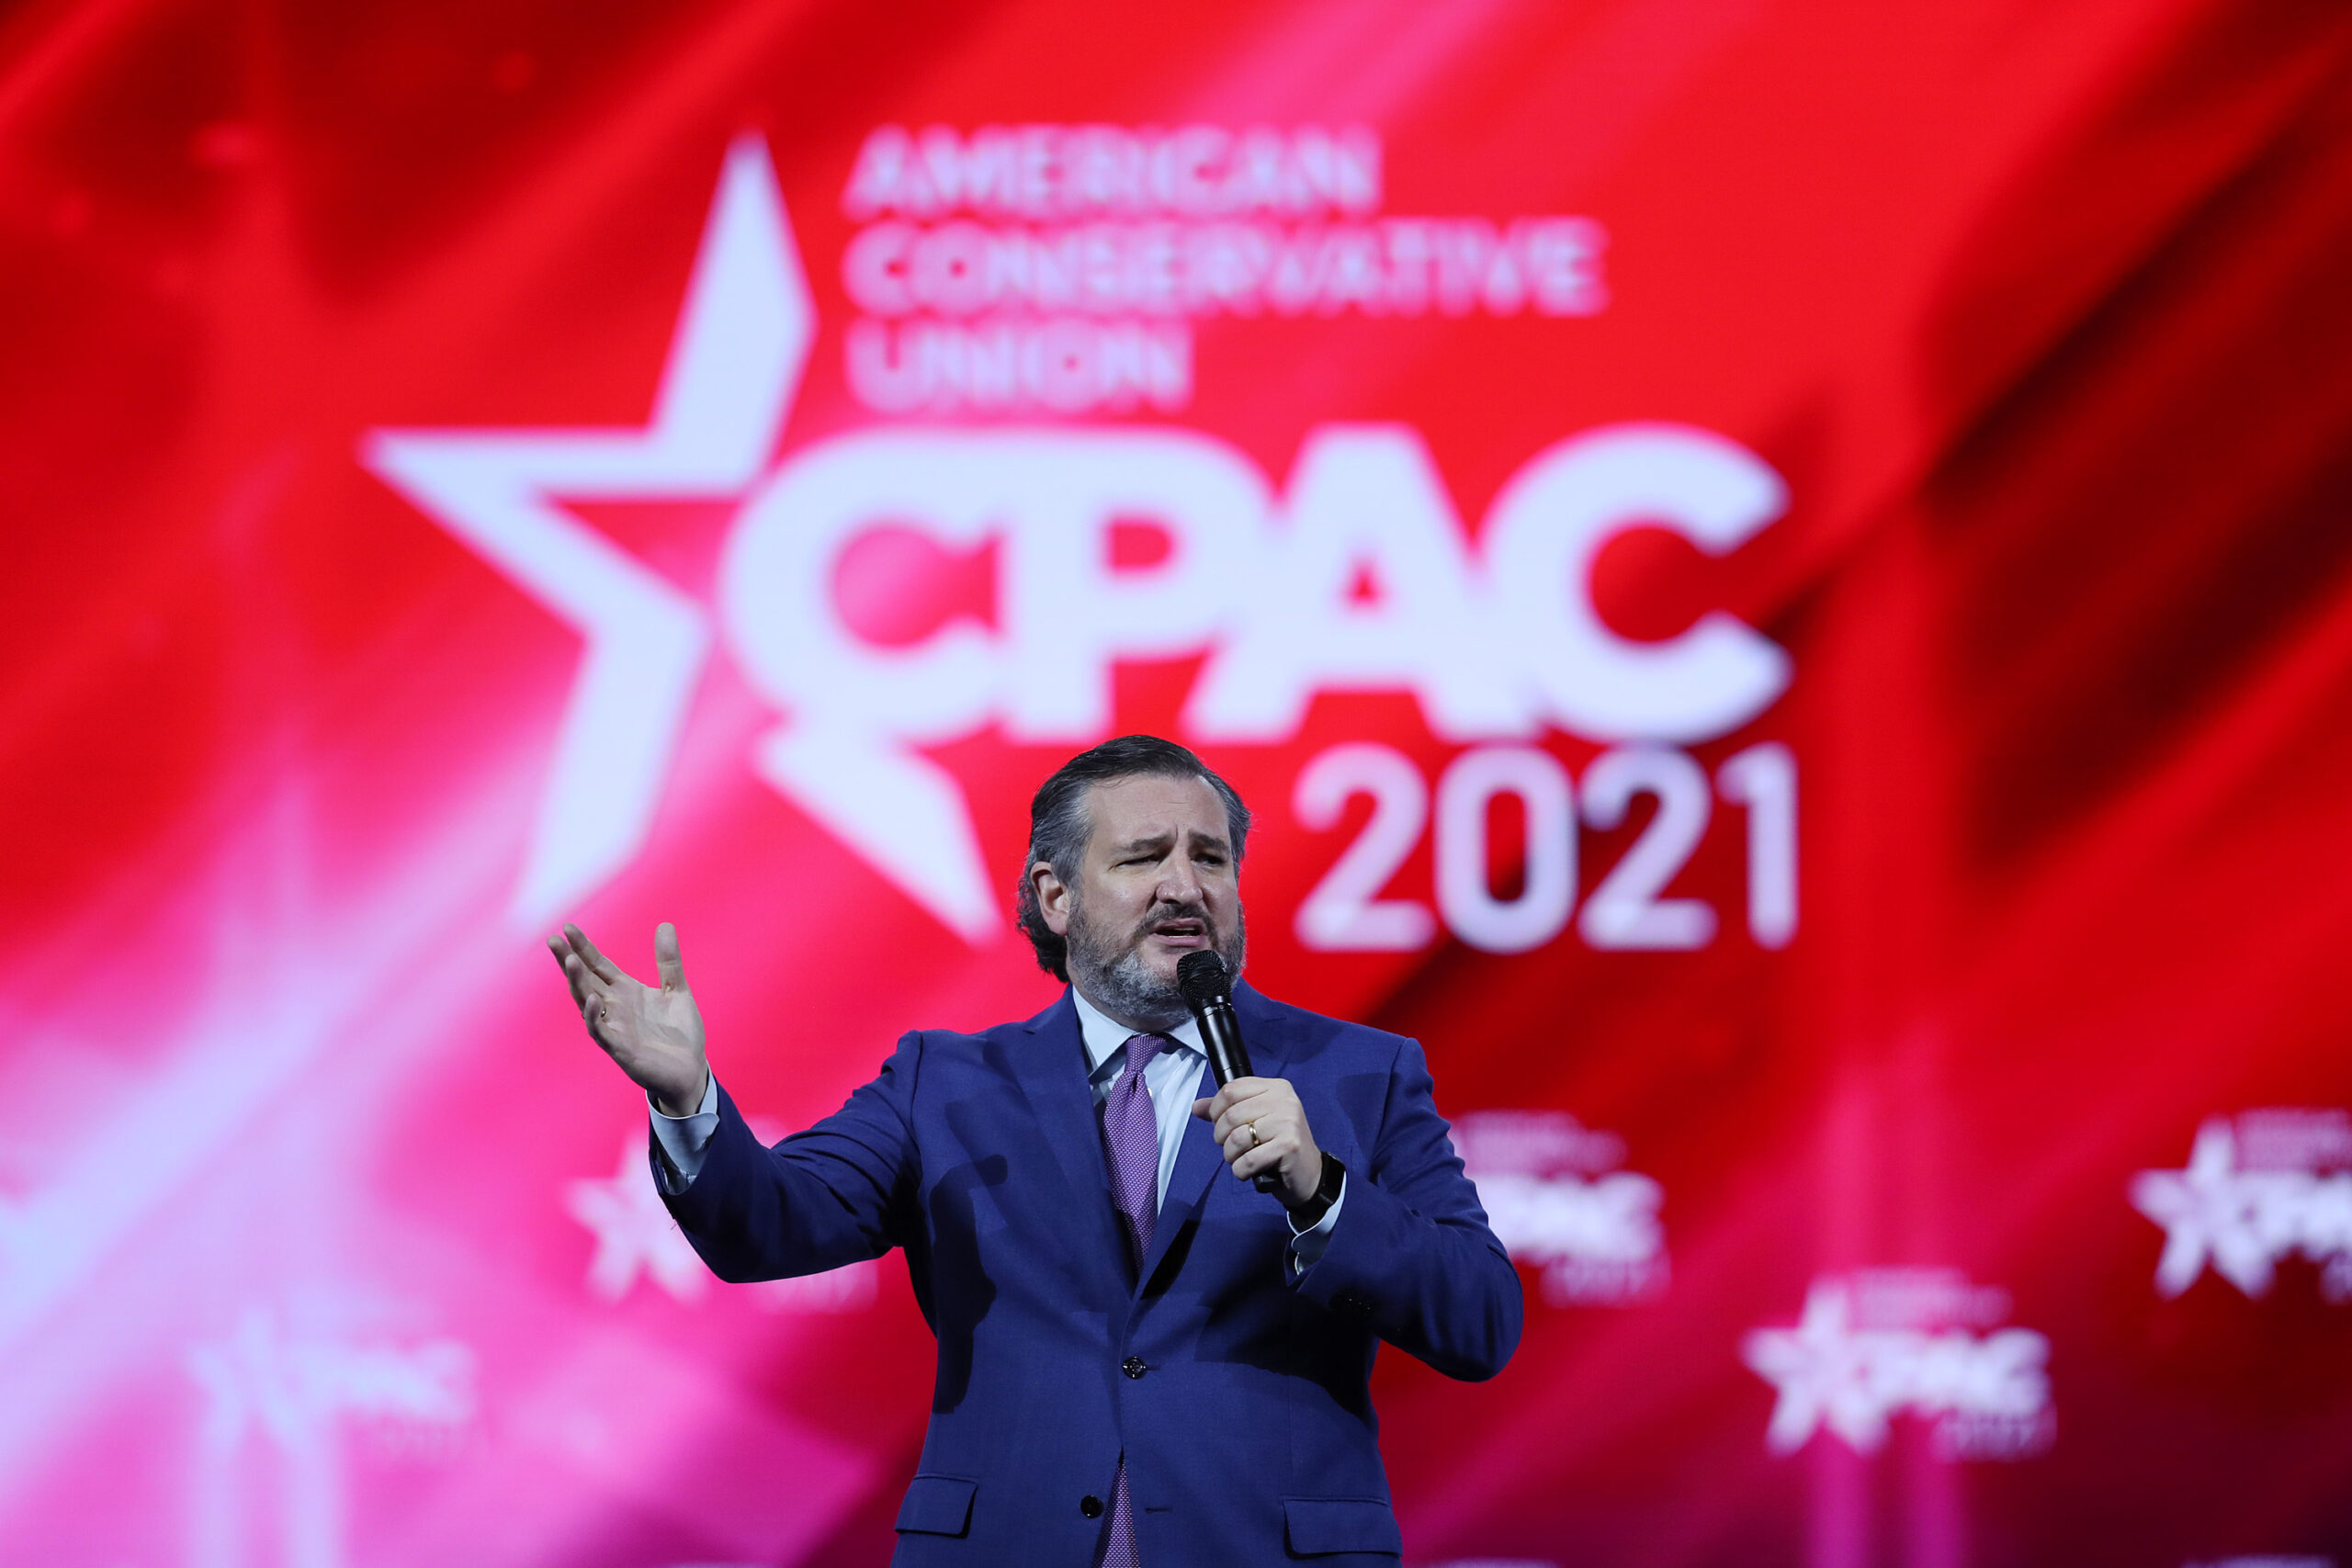 At Conservative Convention, Ted Cruz Says Mask Mandates Are 'Just Dumb'